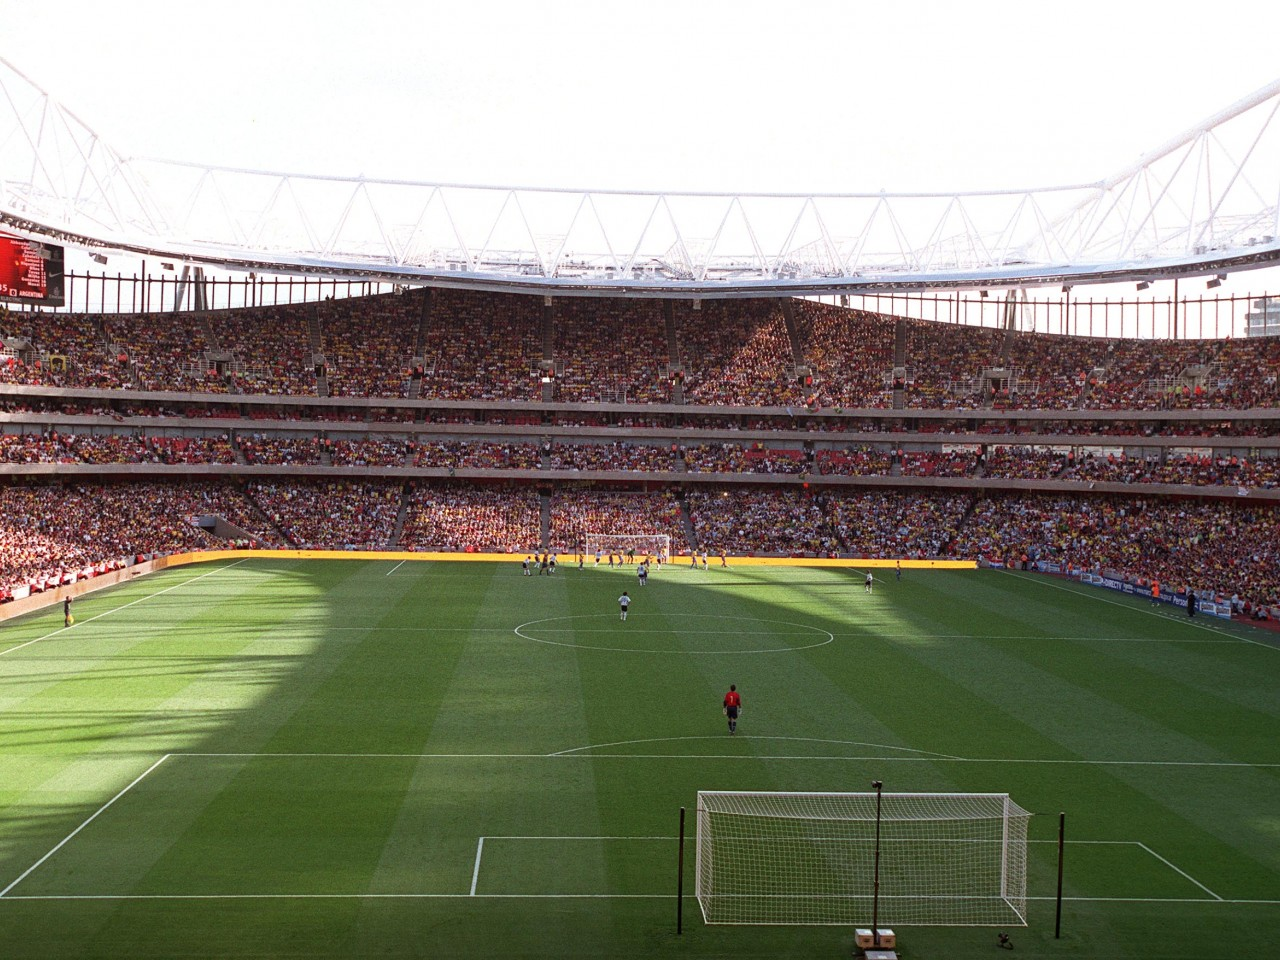 Arsenal v Leicester City - 12 Aug 2017